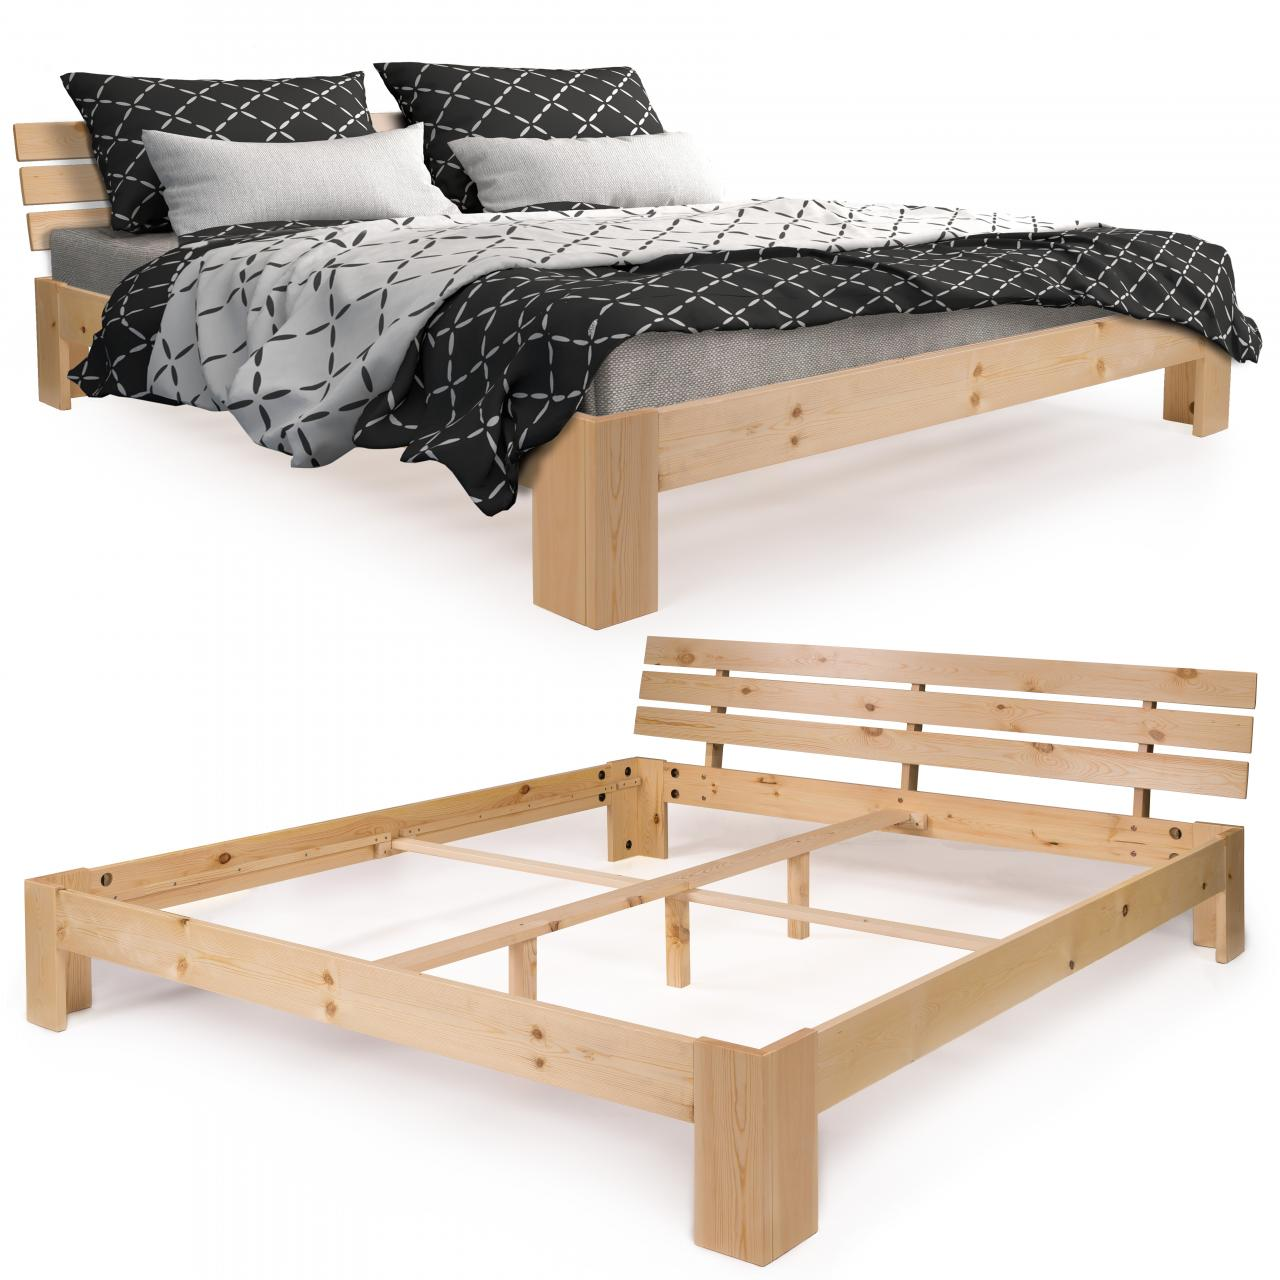 homelux holzbett kiefer doppel lattenrost bett rahmen gestell 140 180cm massiv ebay. Black Bedroom Furniture Sets. Home Design Ideas